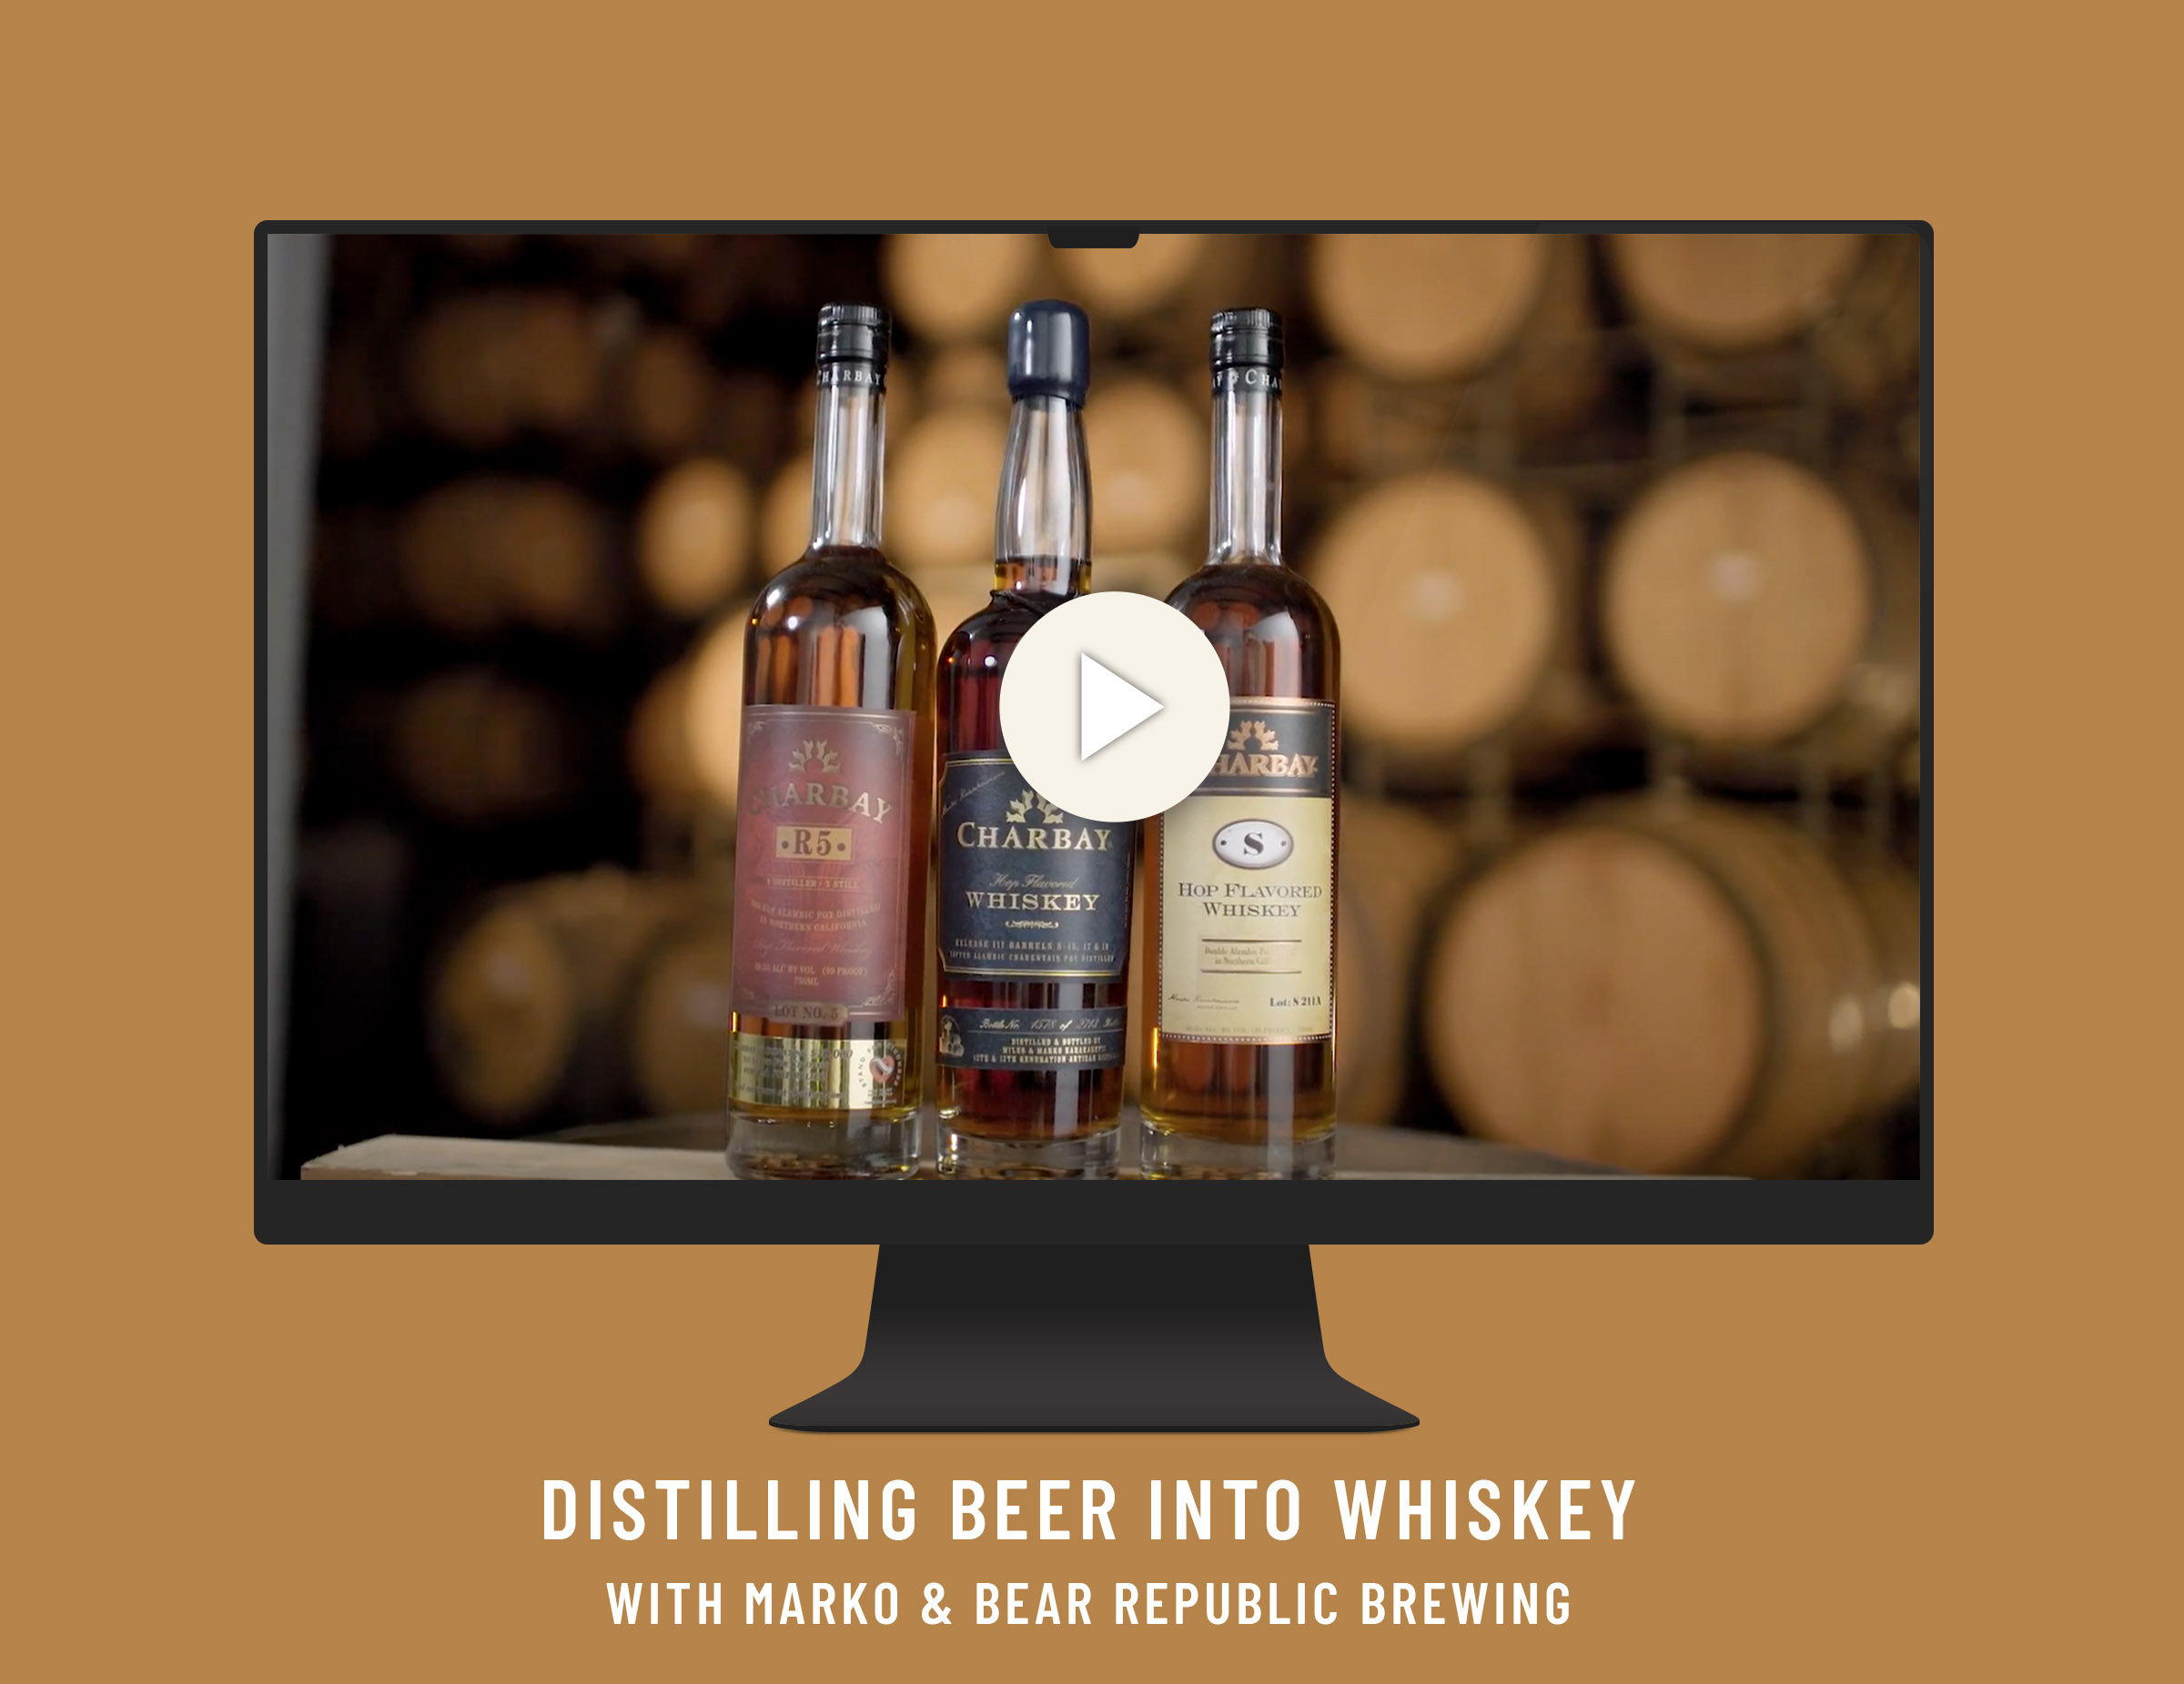 Distilling Beer to Whiskey Video